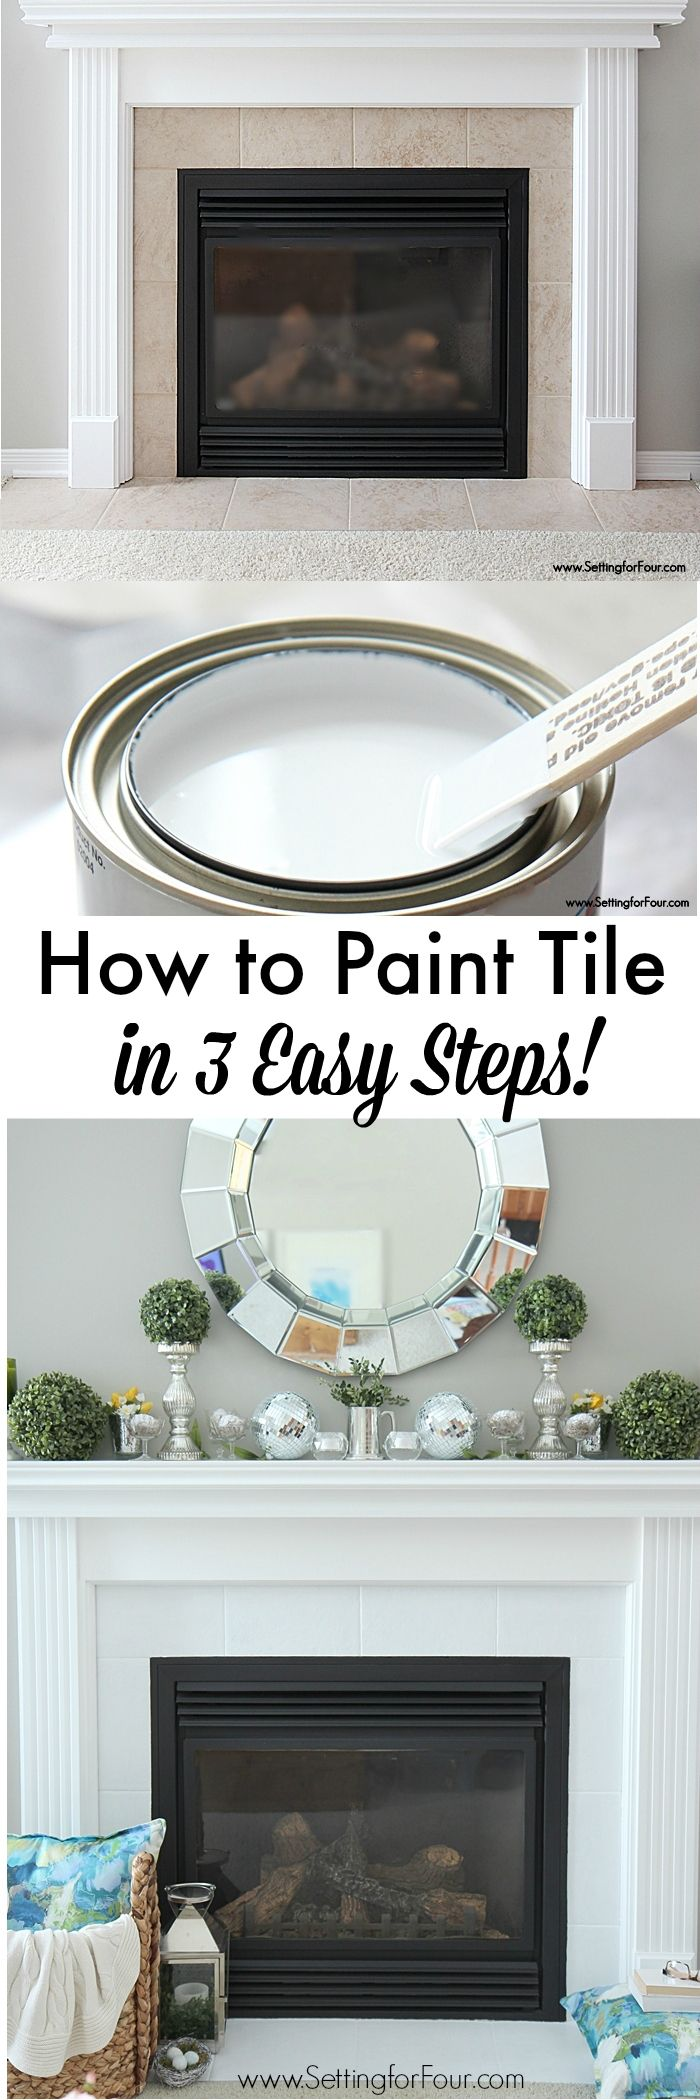 How to Paint Tile in just 3 steps! Makeover your fireplace tile in a weekend! Click to see the easy instructions and supply list! Great idea for resale and staging your home to sell.